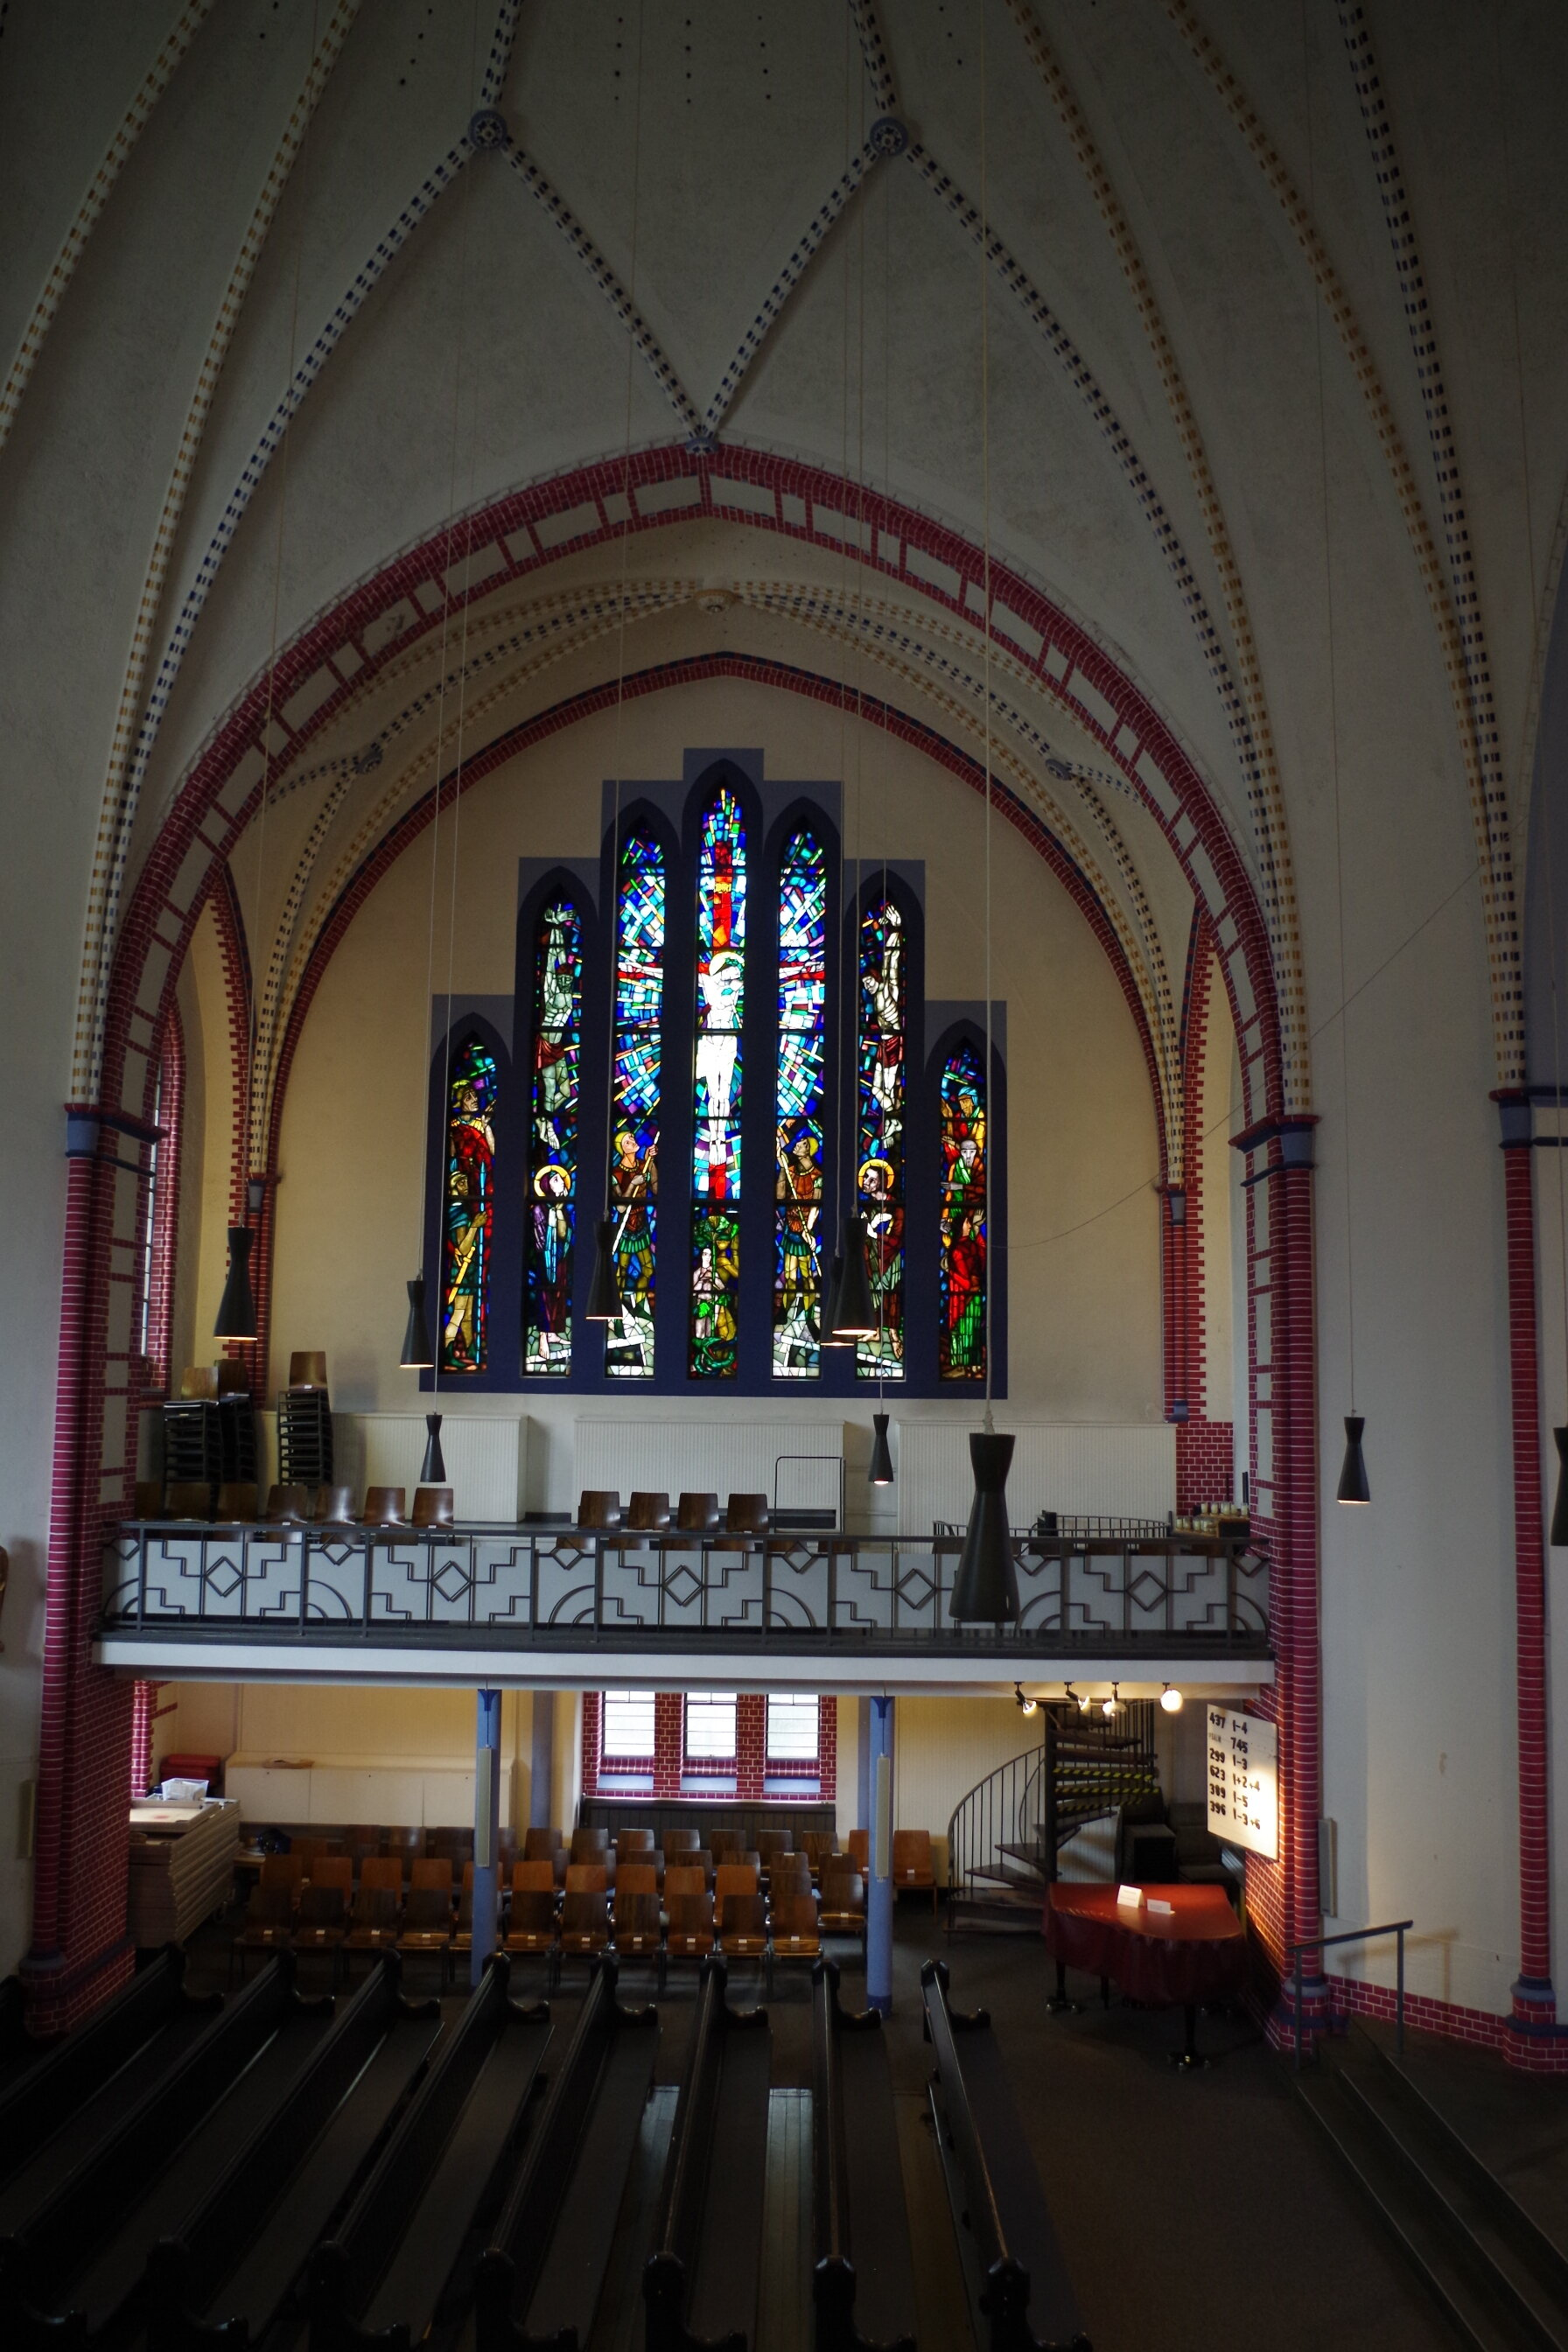 The stained glass of Hamburg's Kreuzkirche (Holy Cross Church) depicts Jesus on the cross. Photo by Jelena Malkowski.